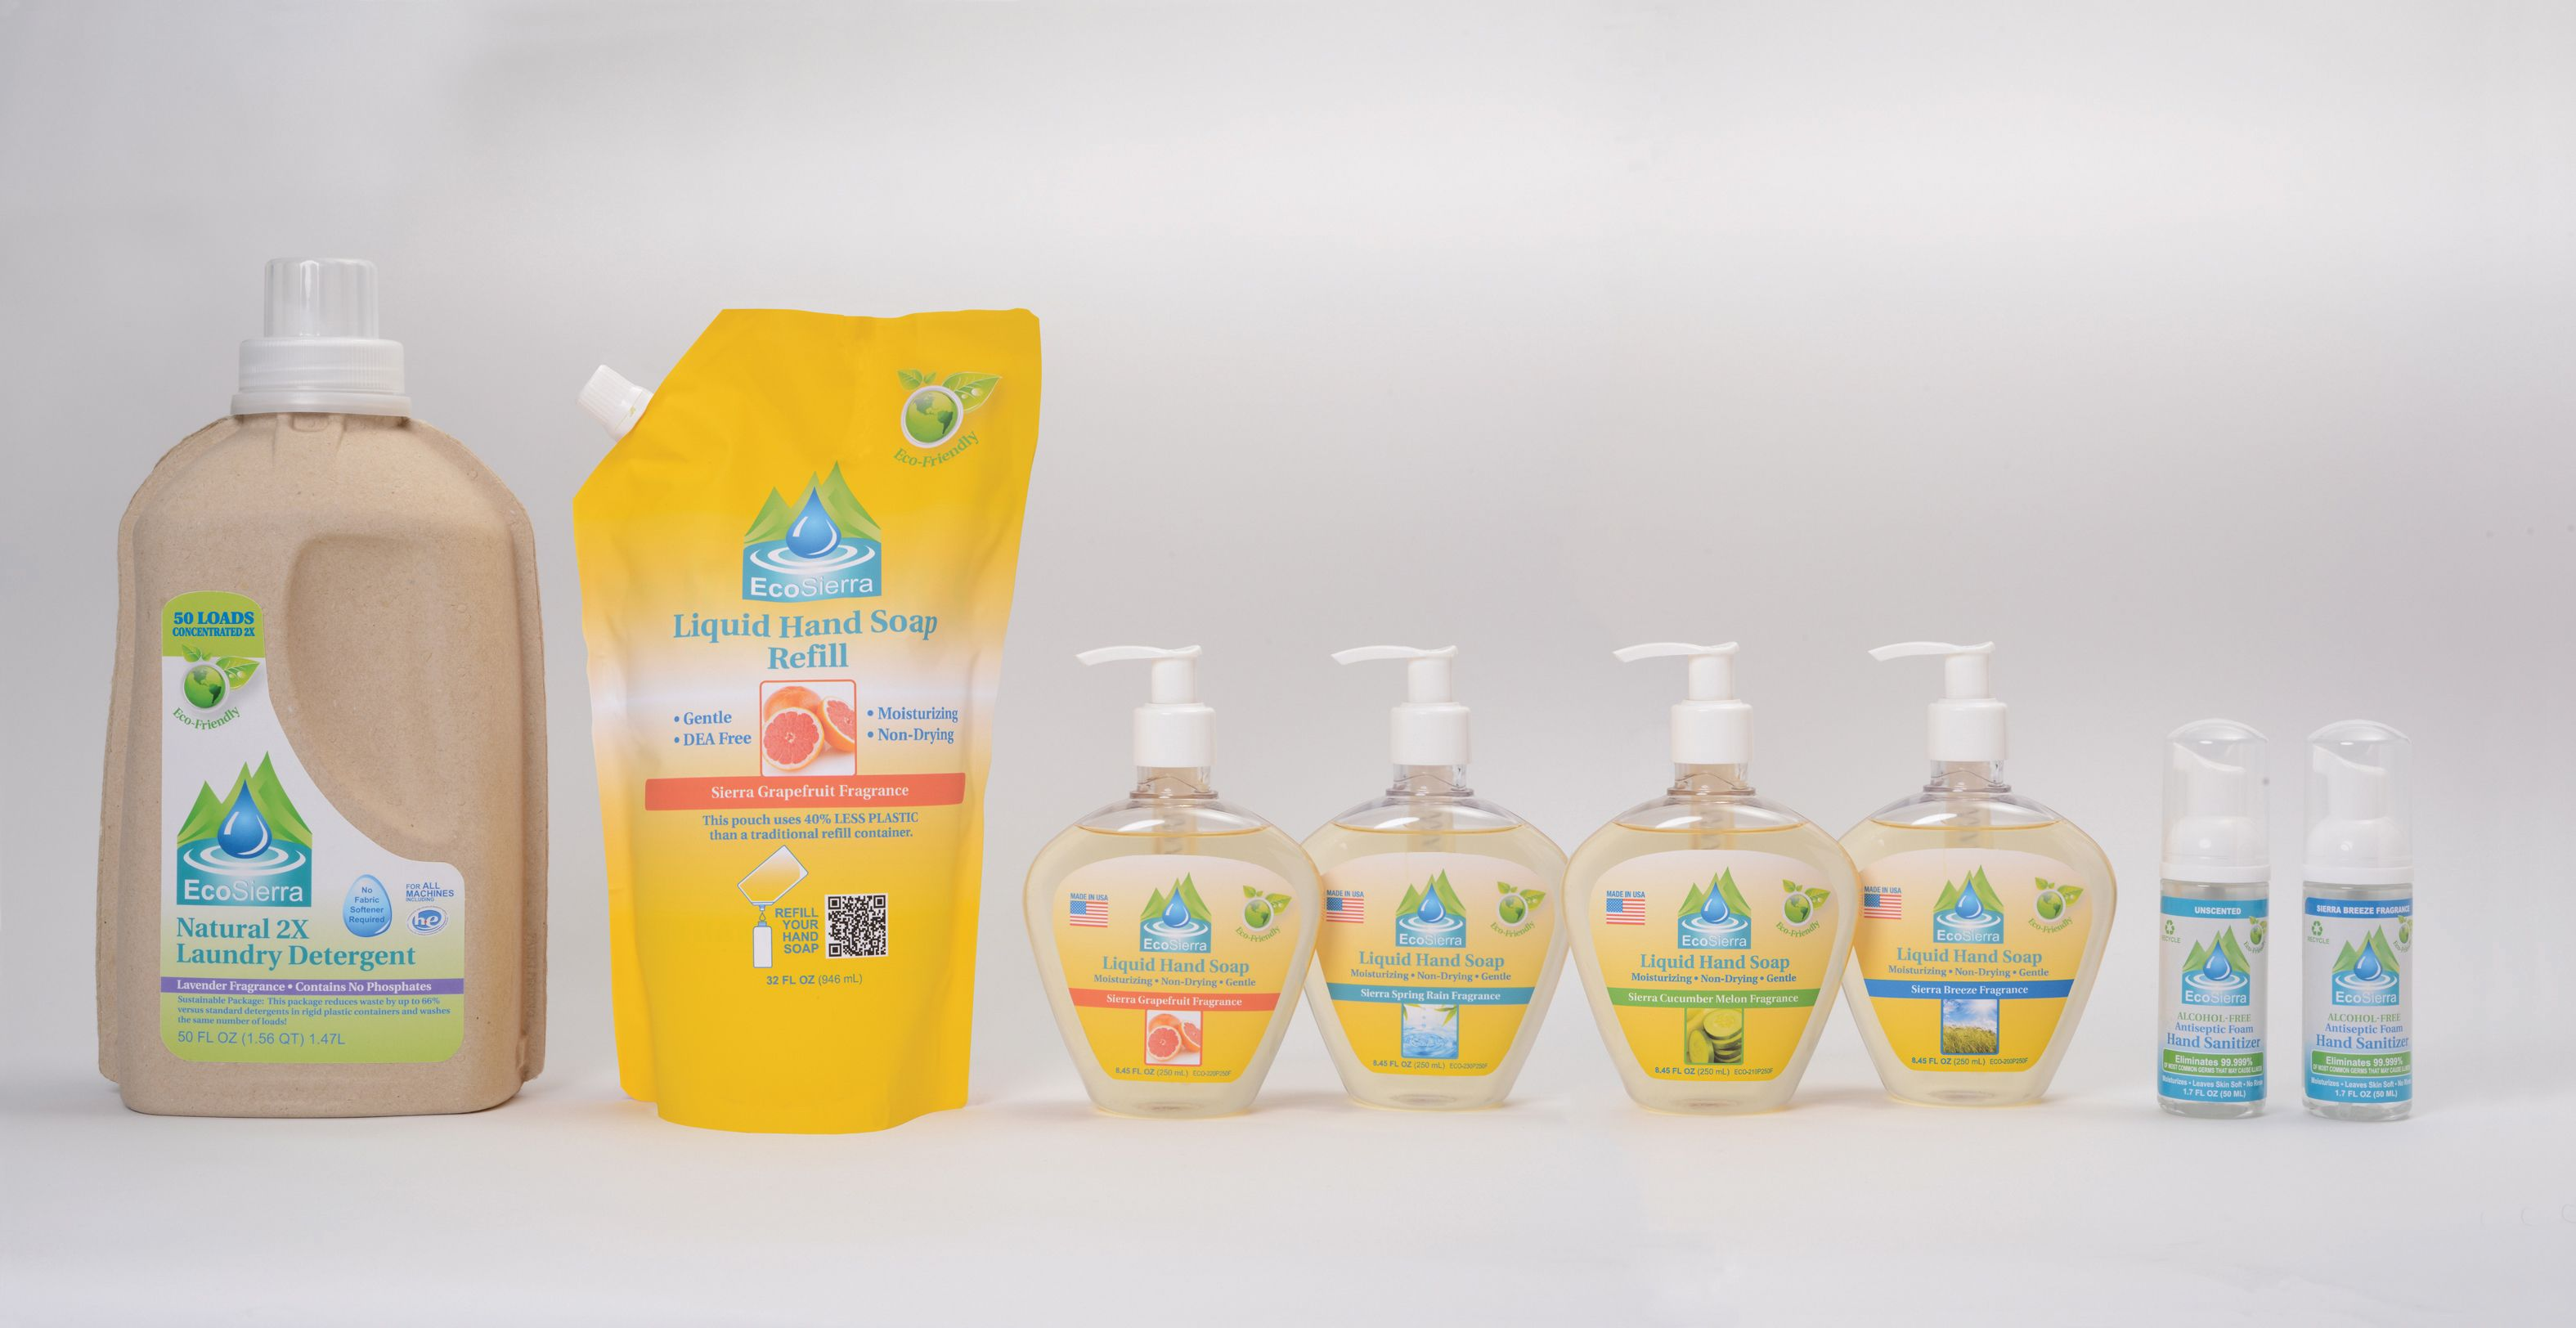 New Environmentally Friendly Household Personal Cleaning Products